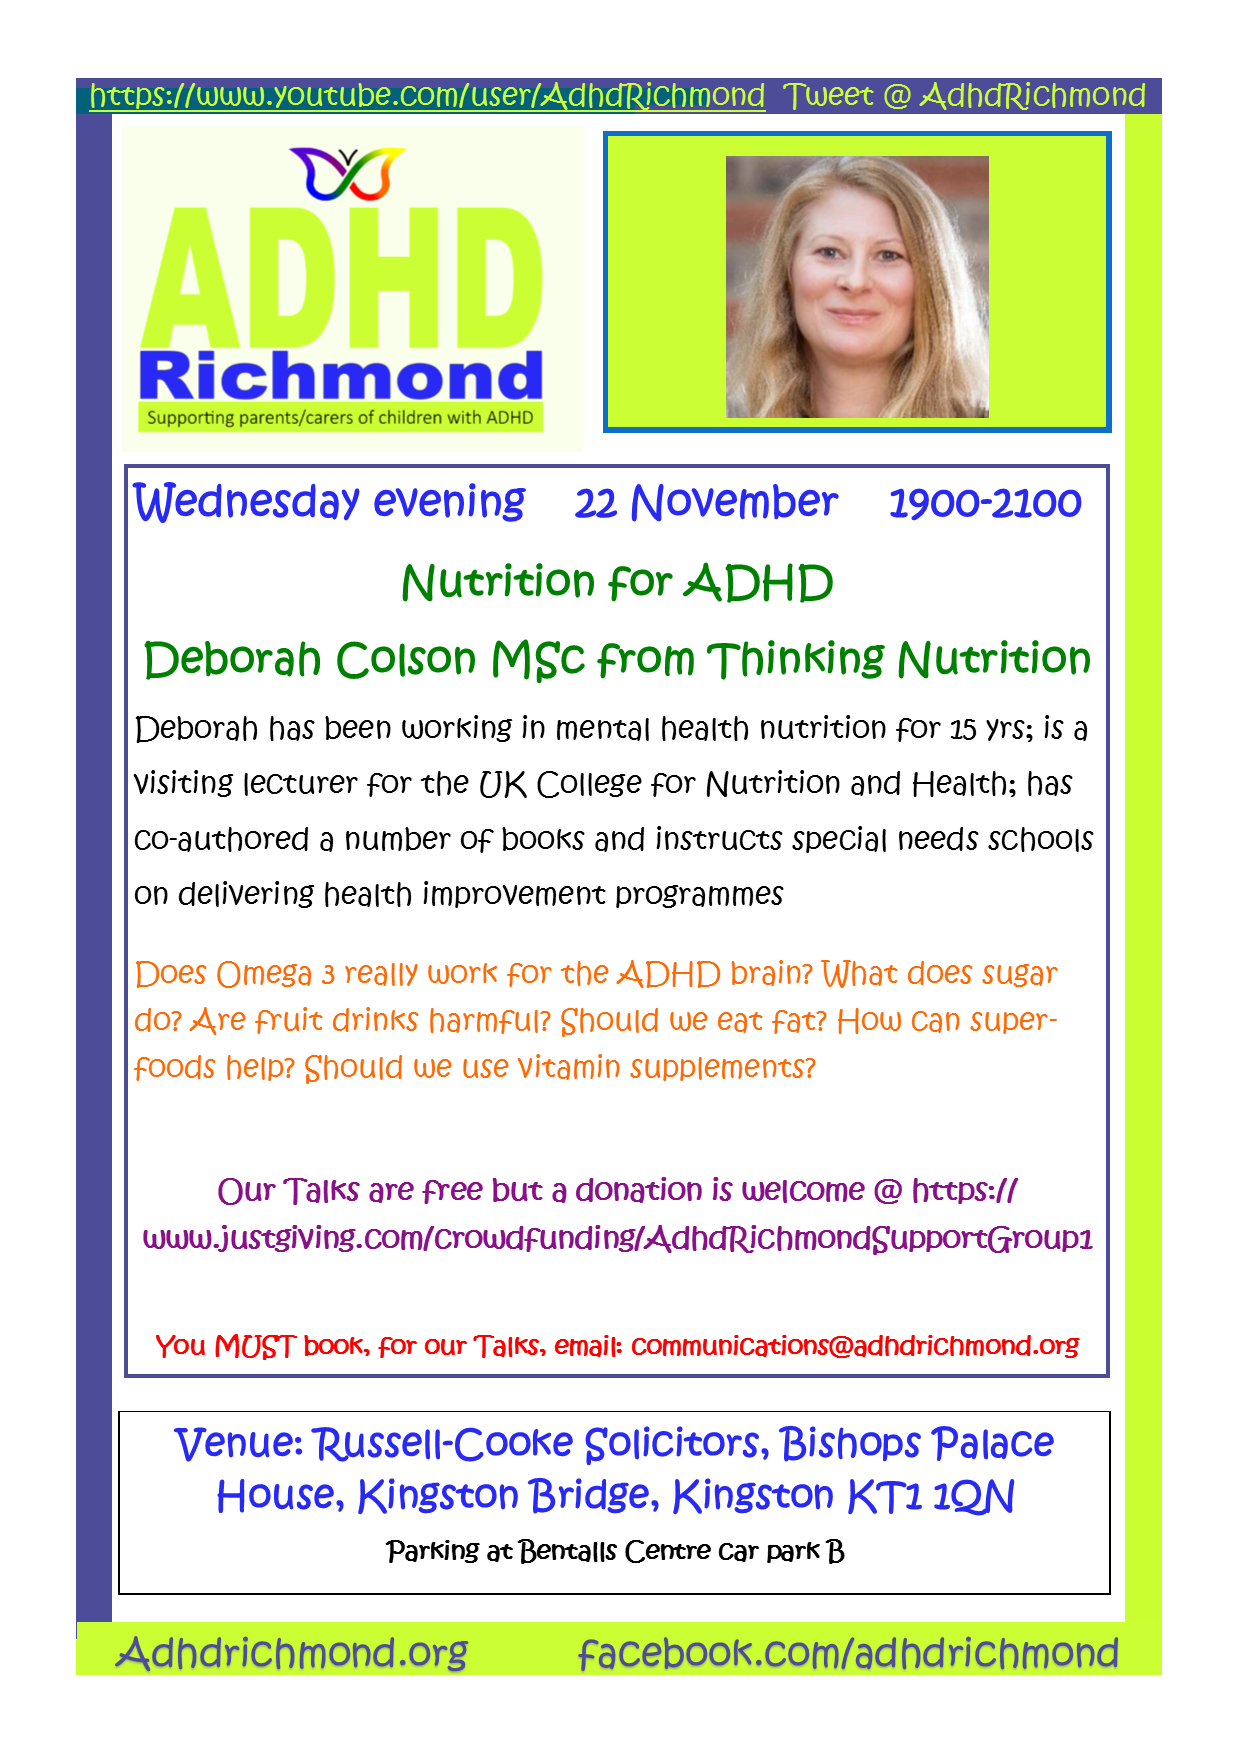 ADHD Richmond free evening Talk on Nutrition